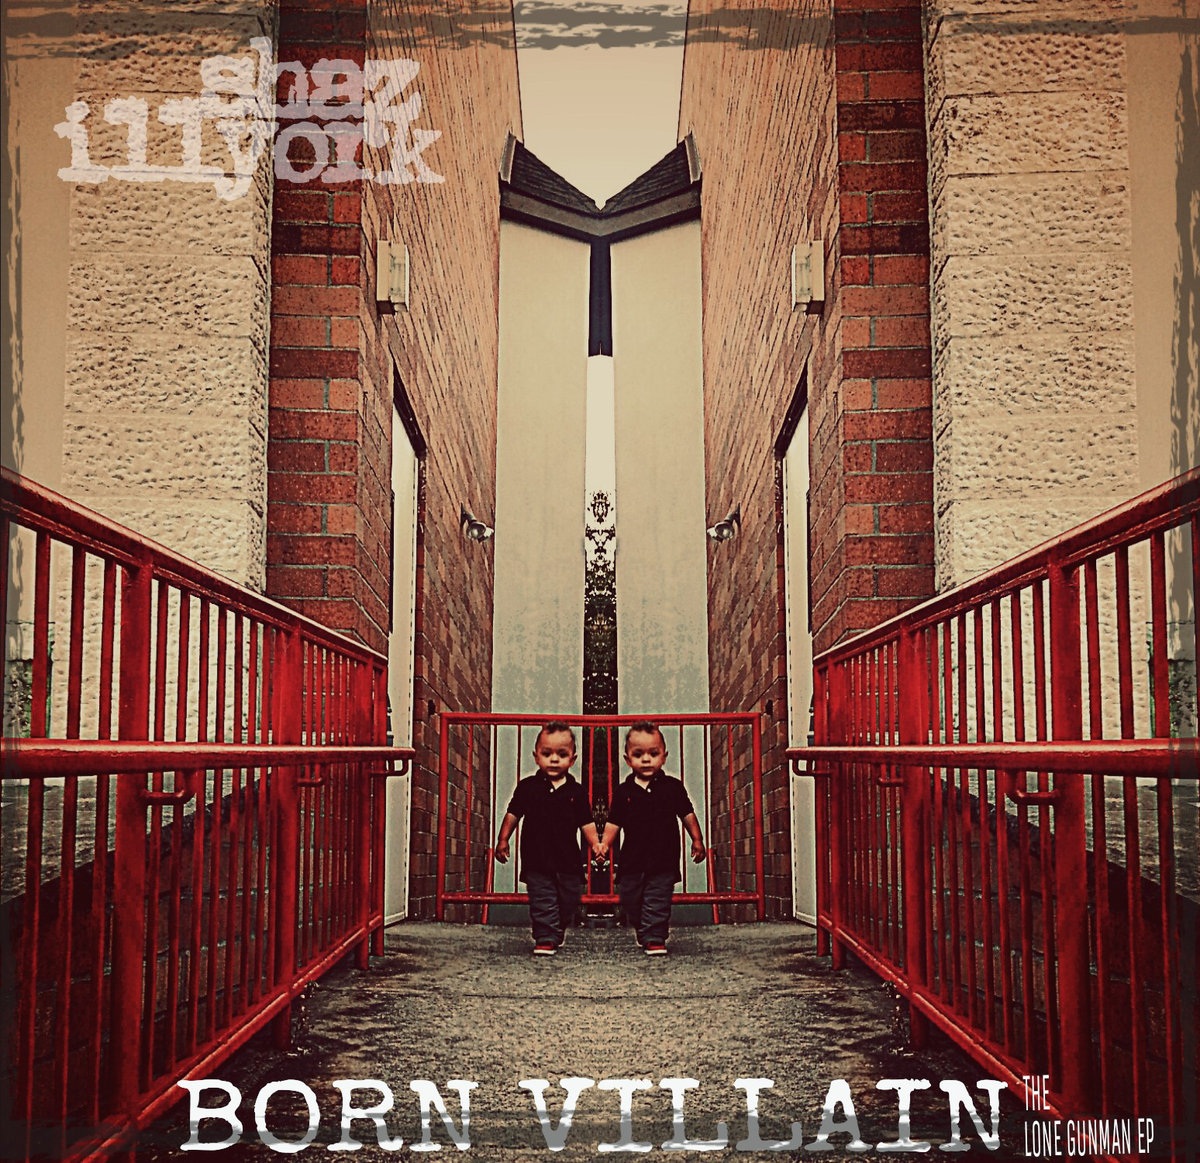 SHAZ ILLYORK – BORN VILLAIN: THE LONE GUNMAN EP Review